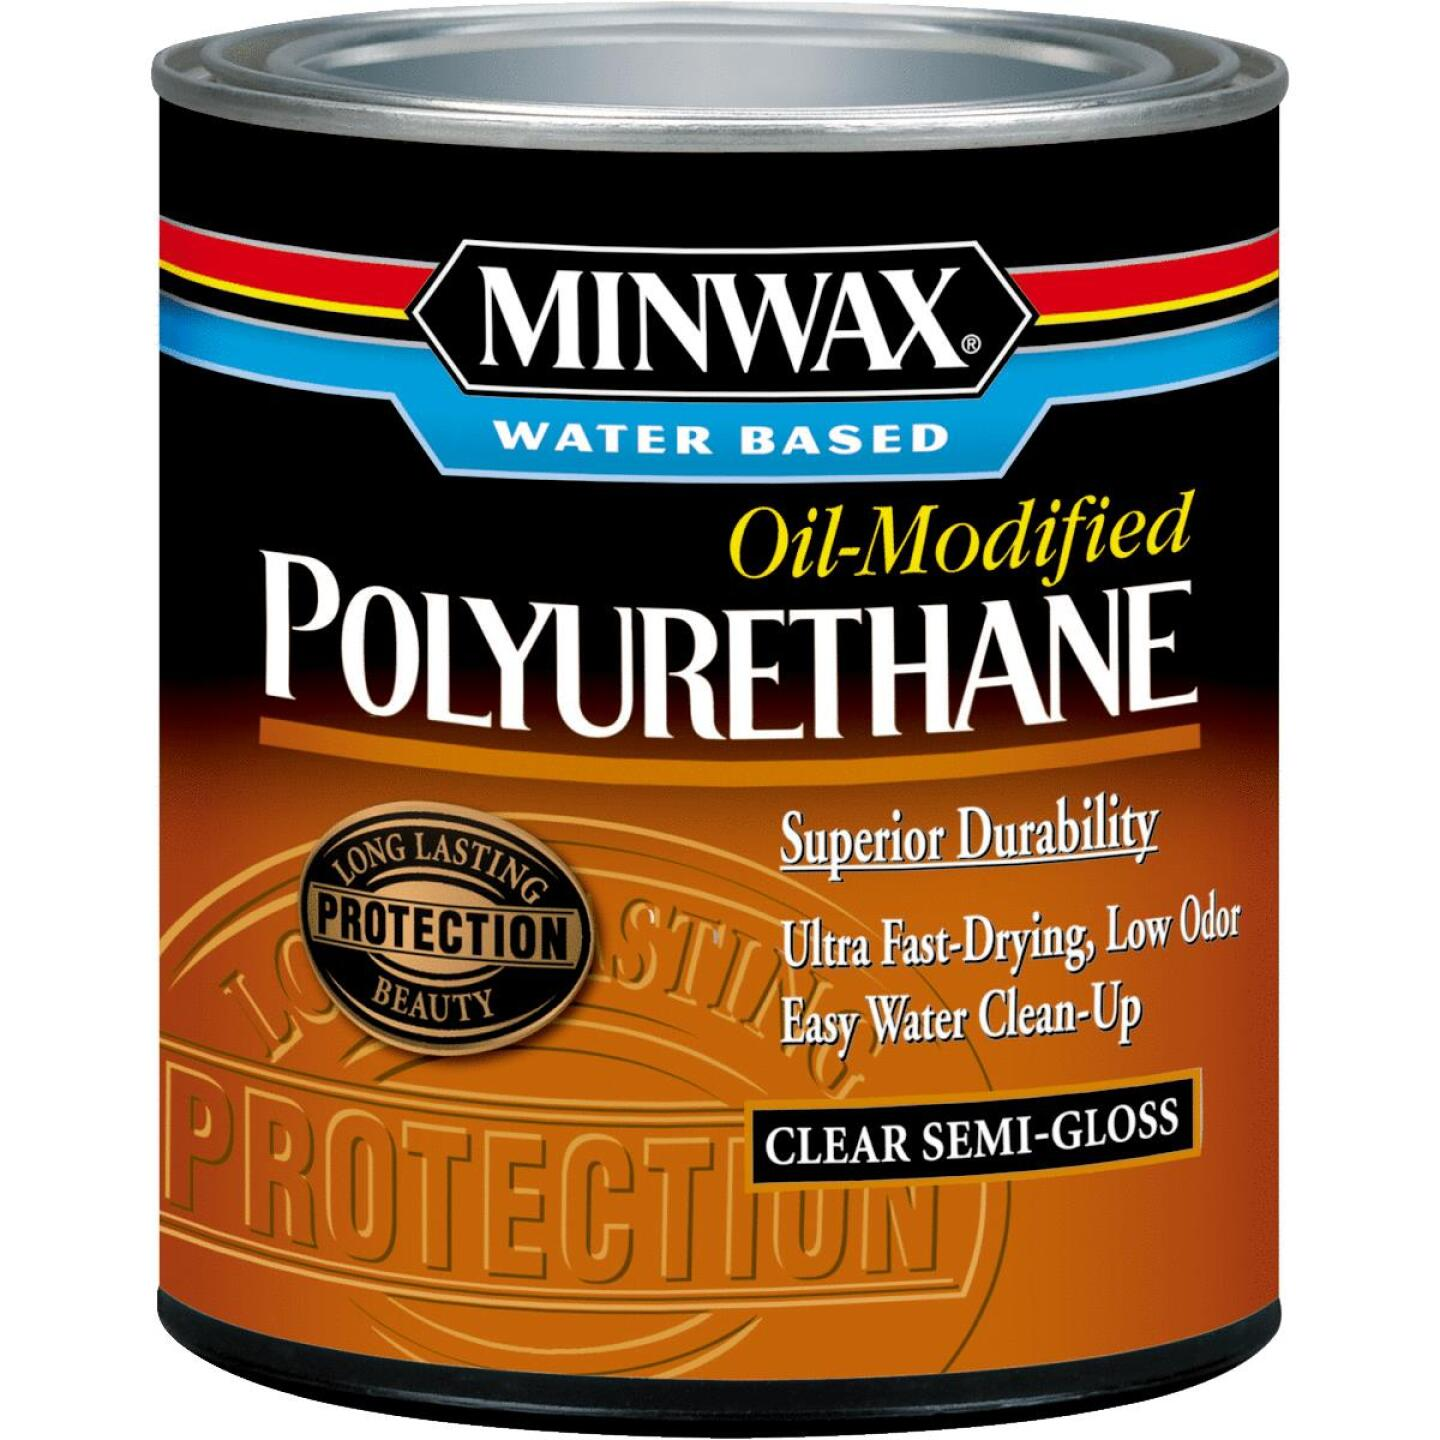 Minwax Semi-Gloss Water Based Oil-Modified Interior Polyurethane, 1/2 Pt. Image 1